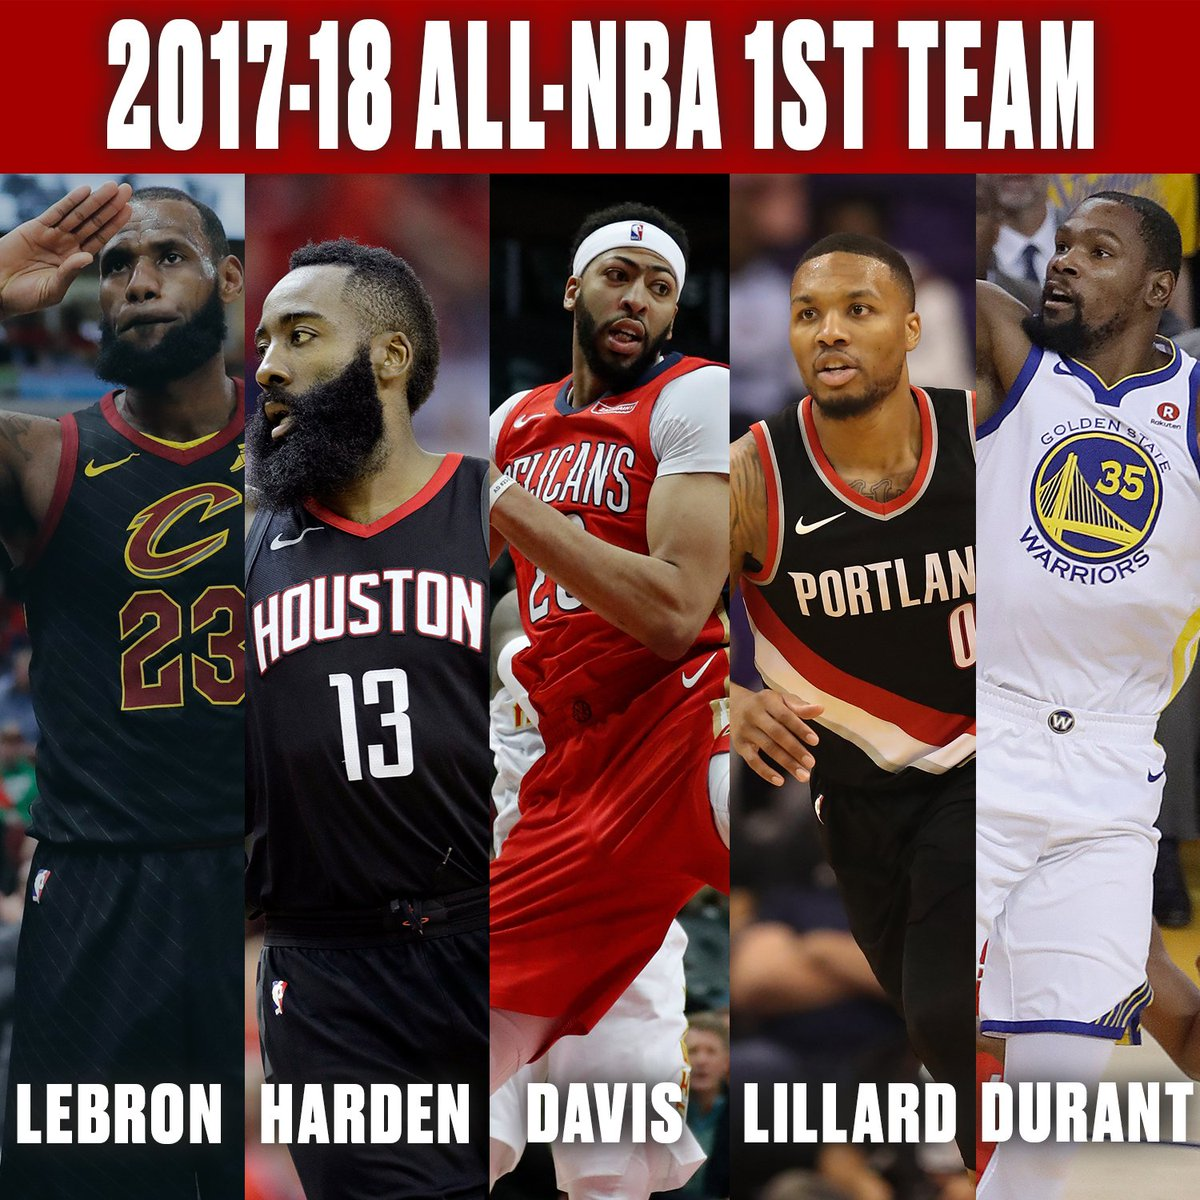 LeBron James leads the All-NBA 1st Team with his record 12th appearance.